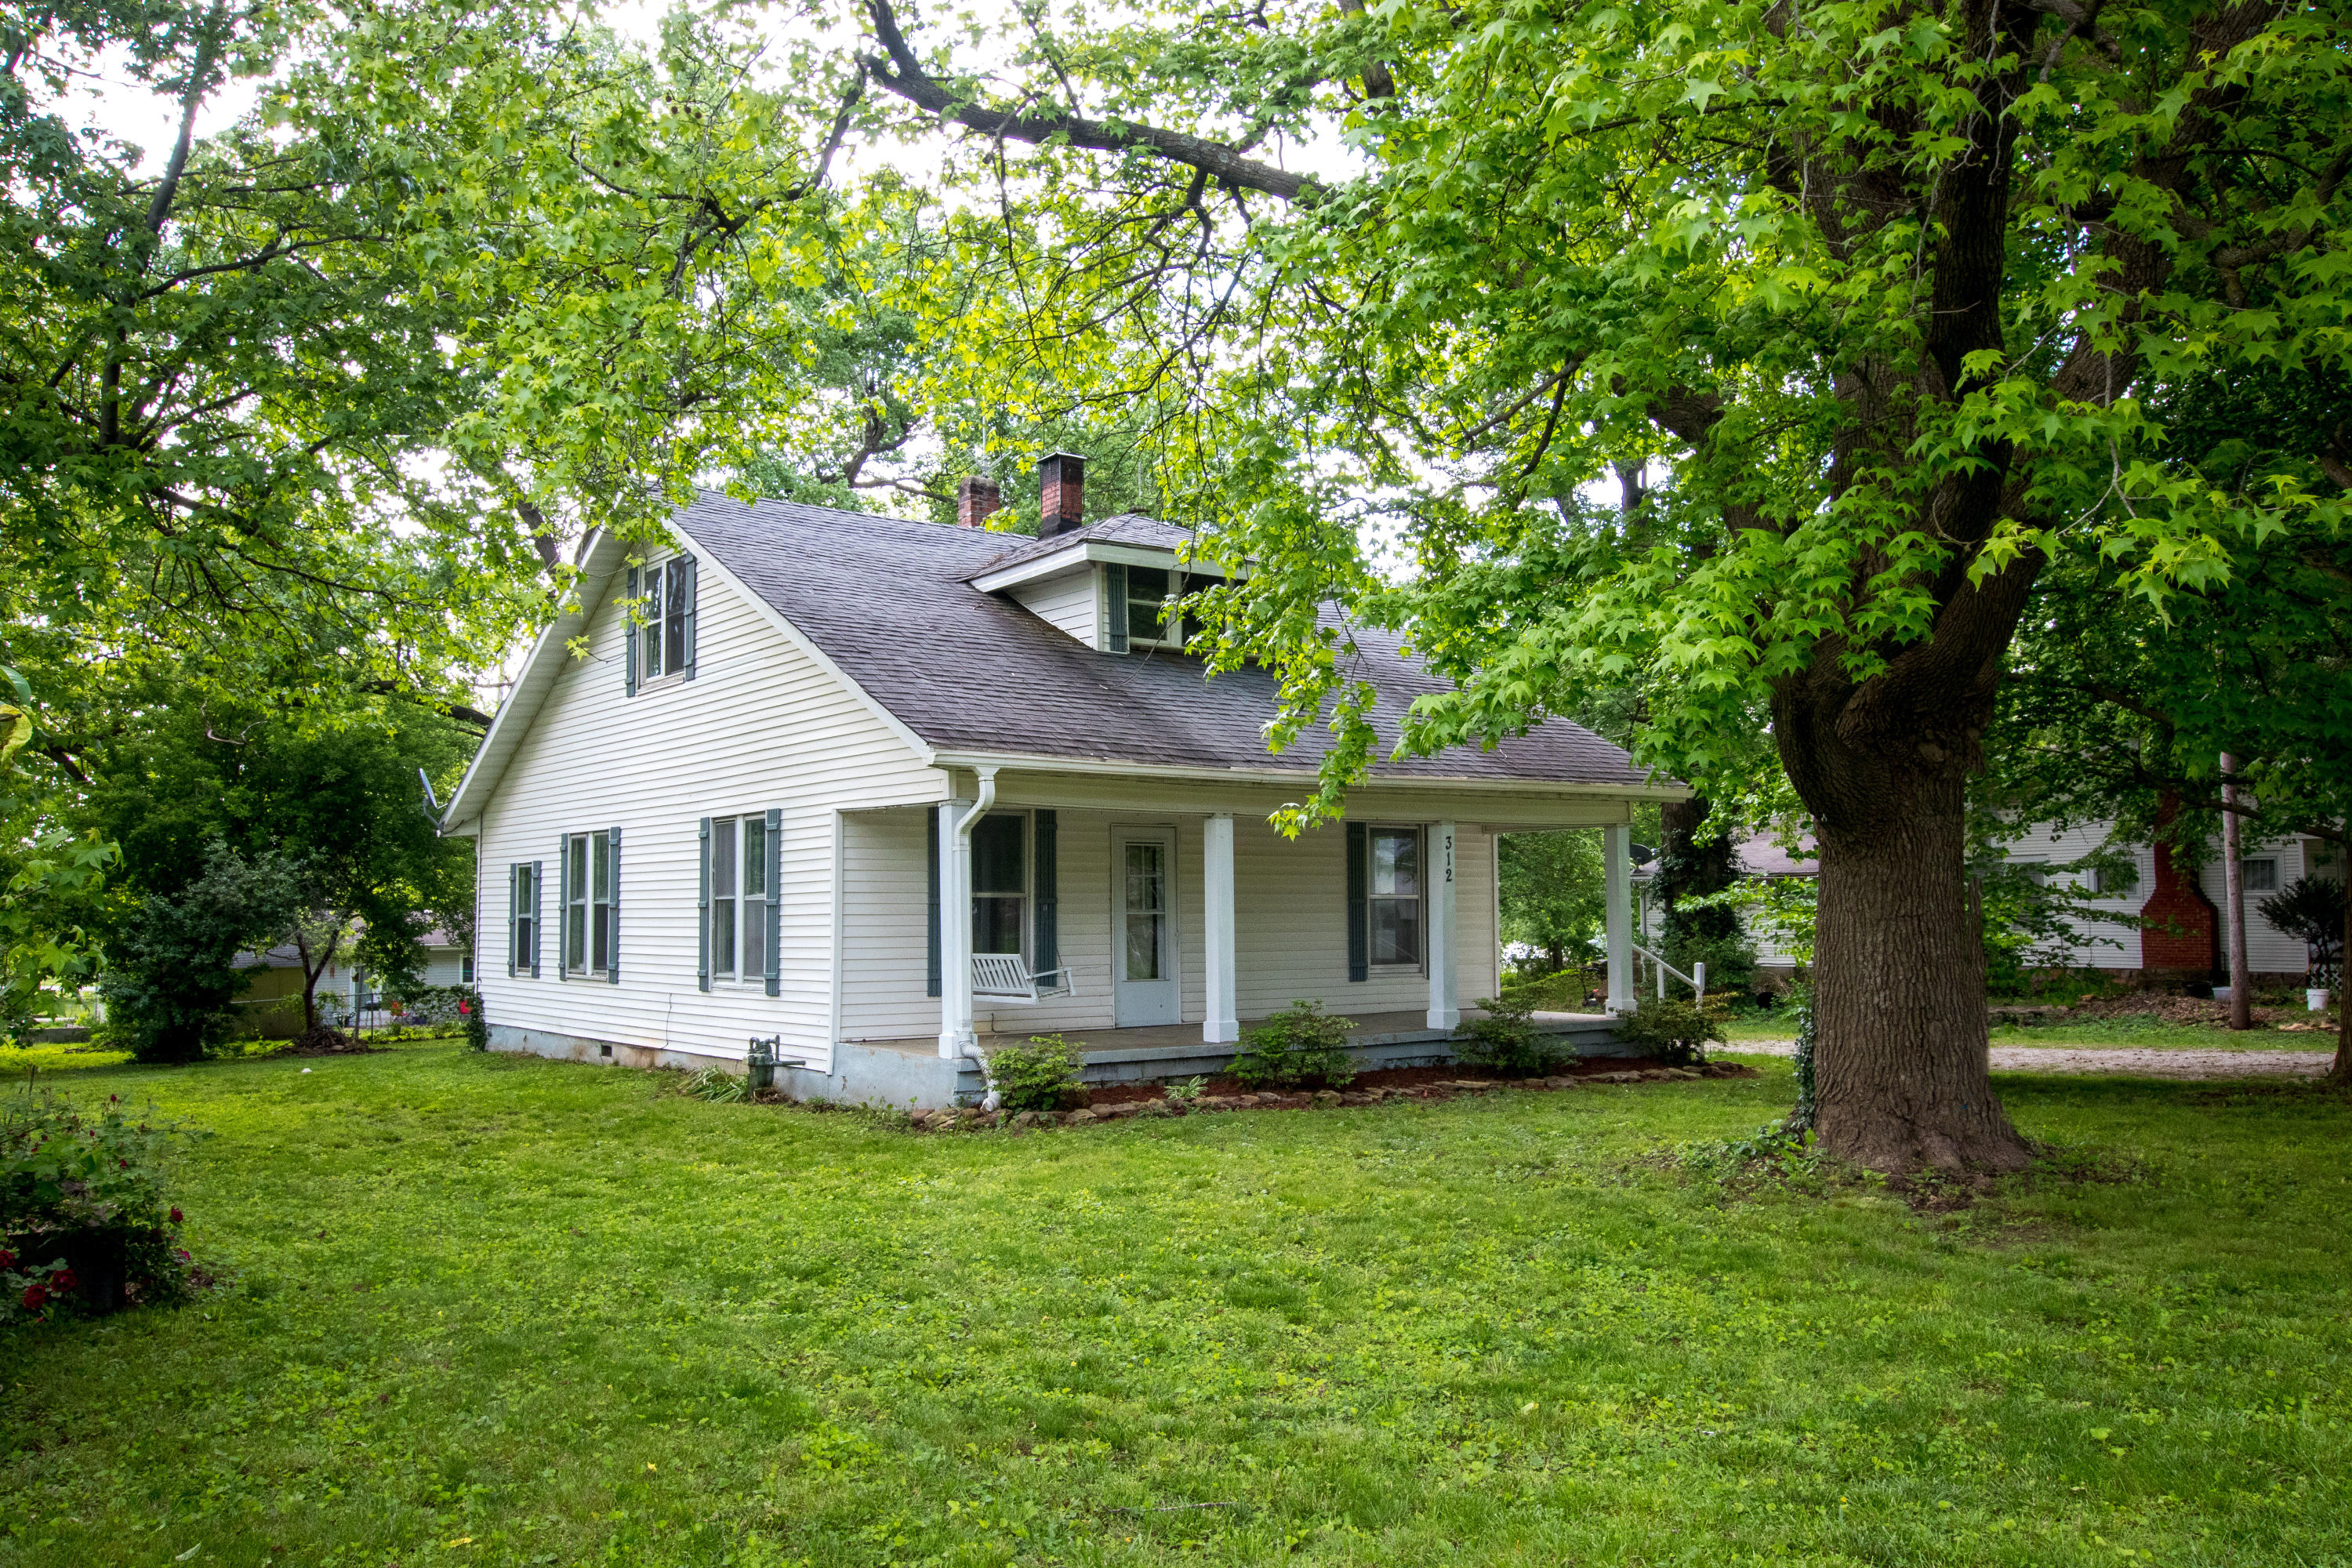 312 South Pershing Street Willard, MO 65781